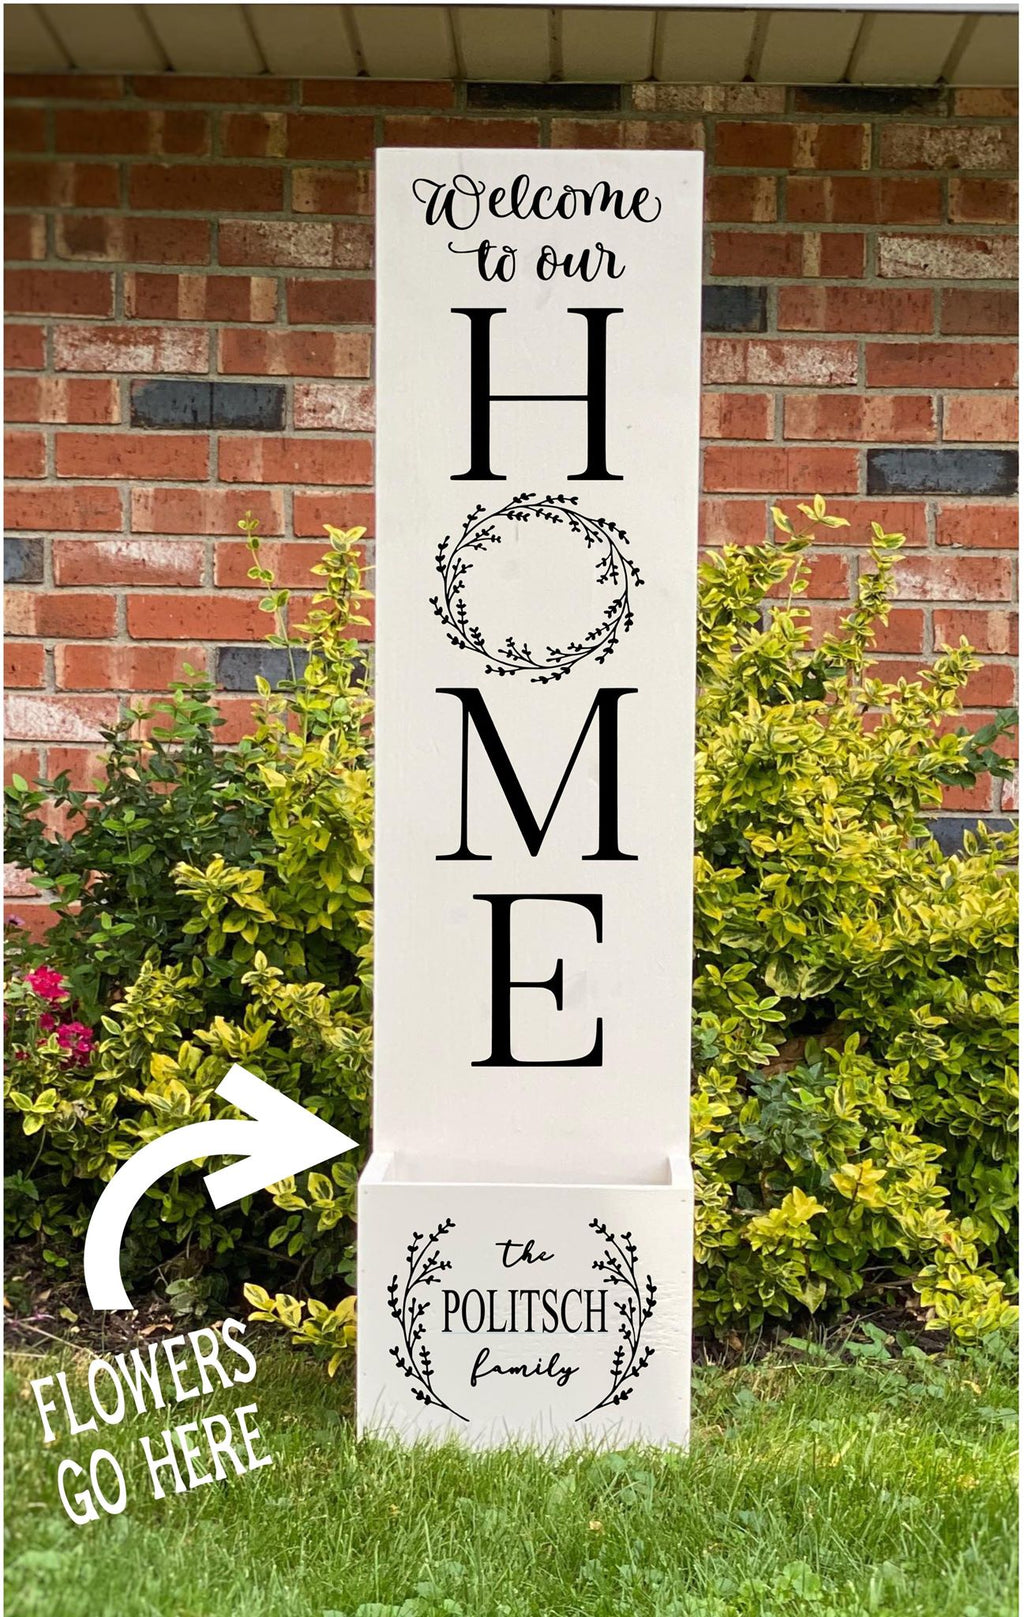 Porch Planter - Welcome to our home with Wreaths and Family name